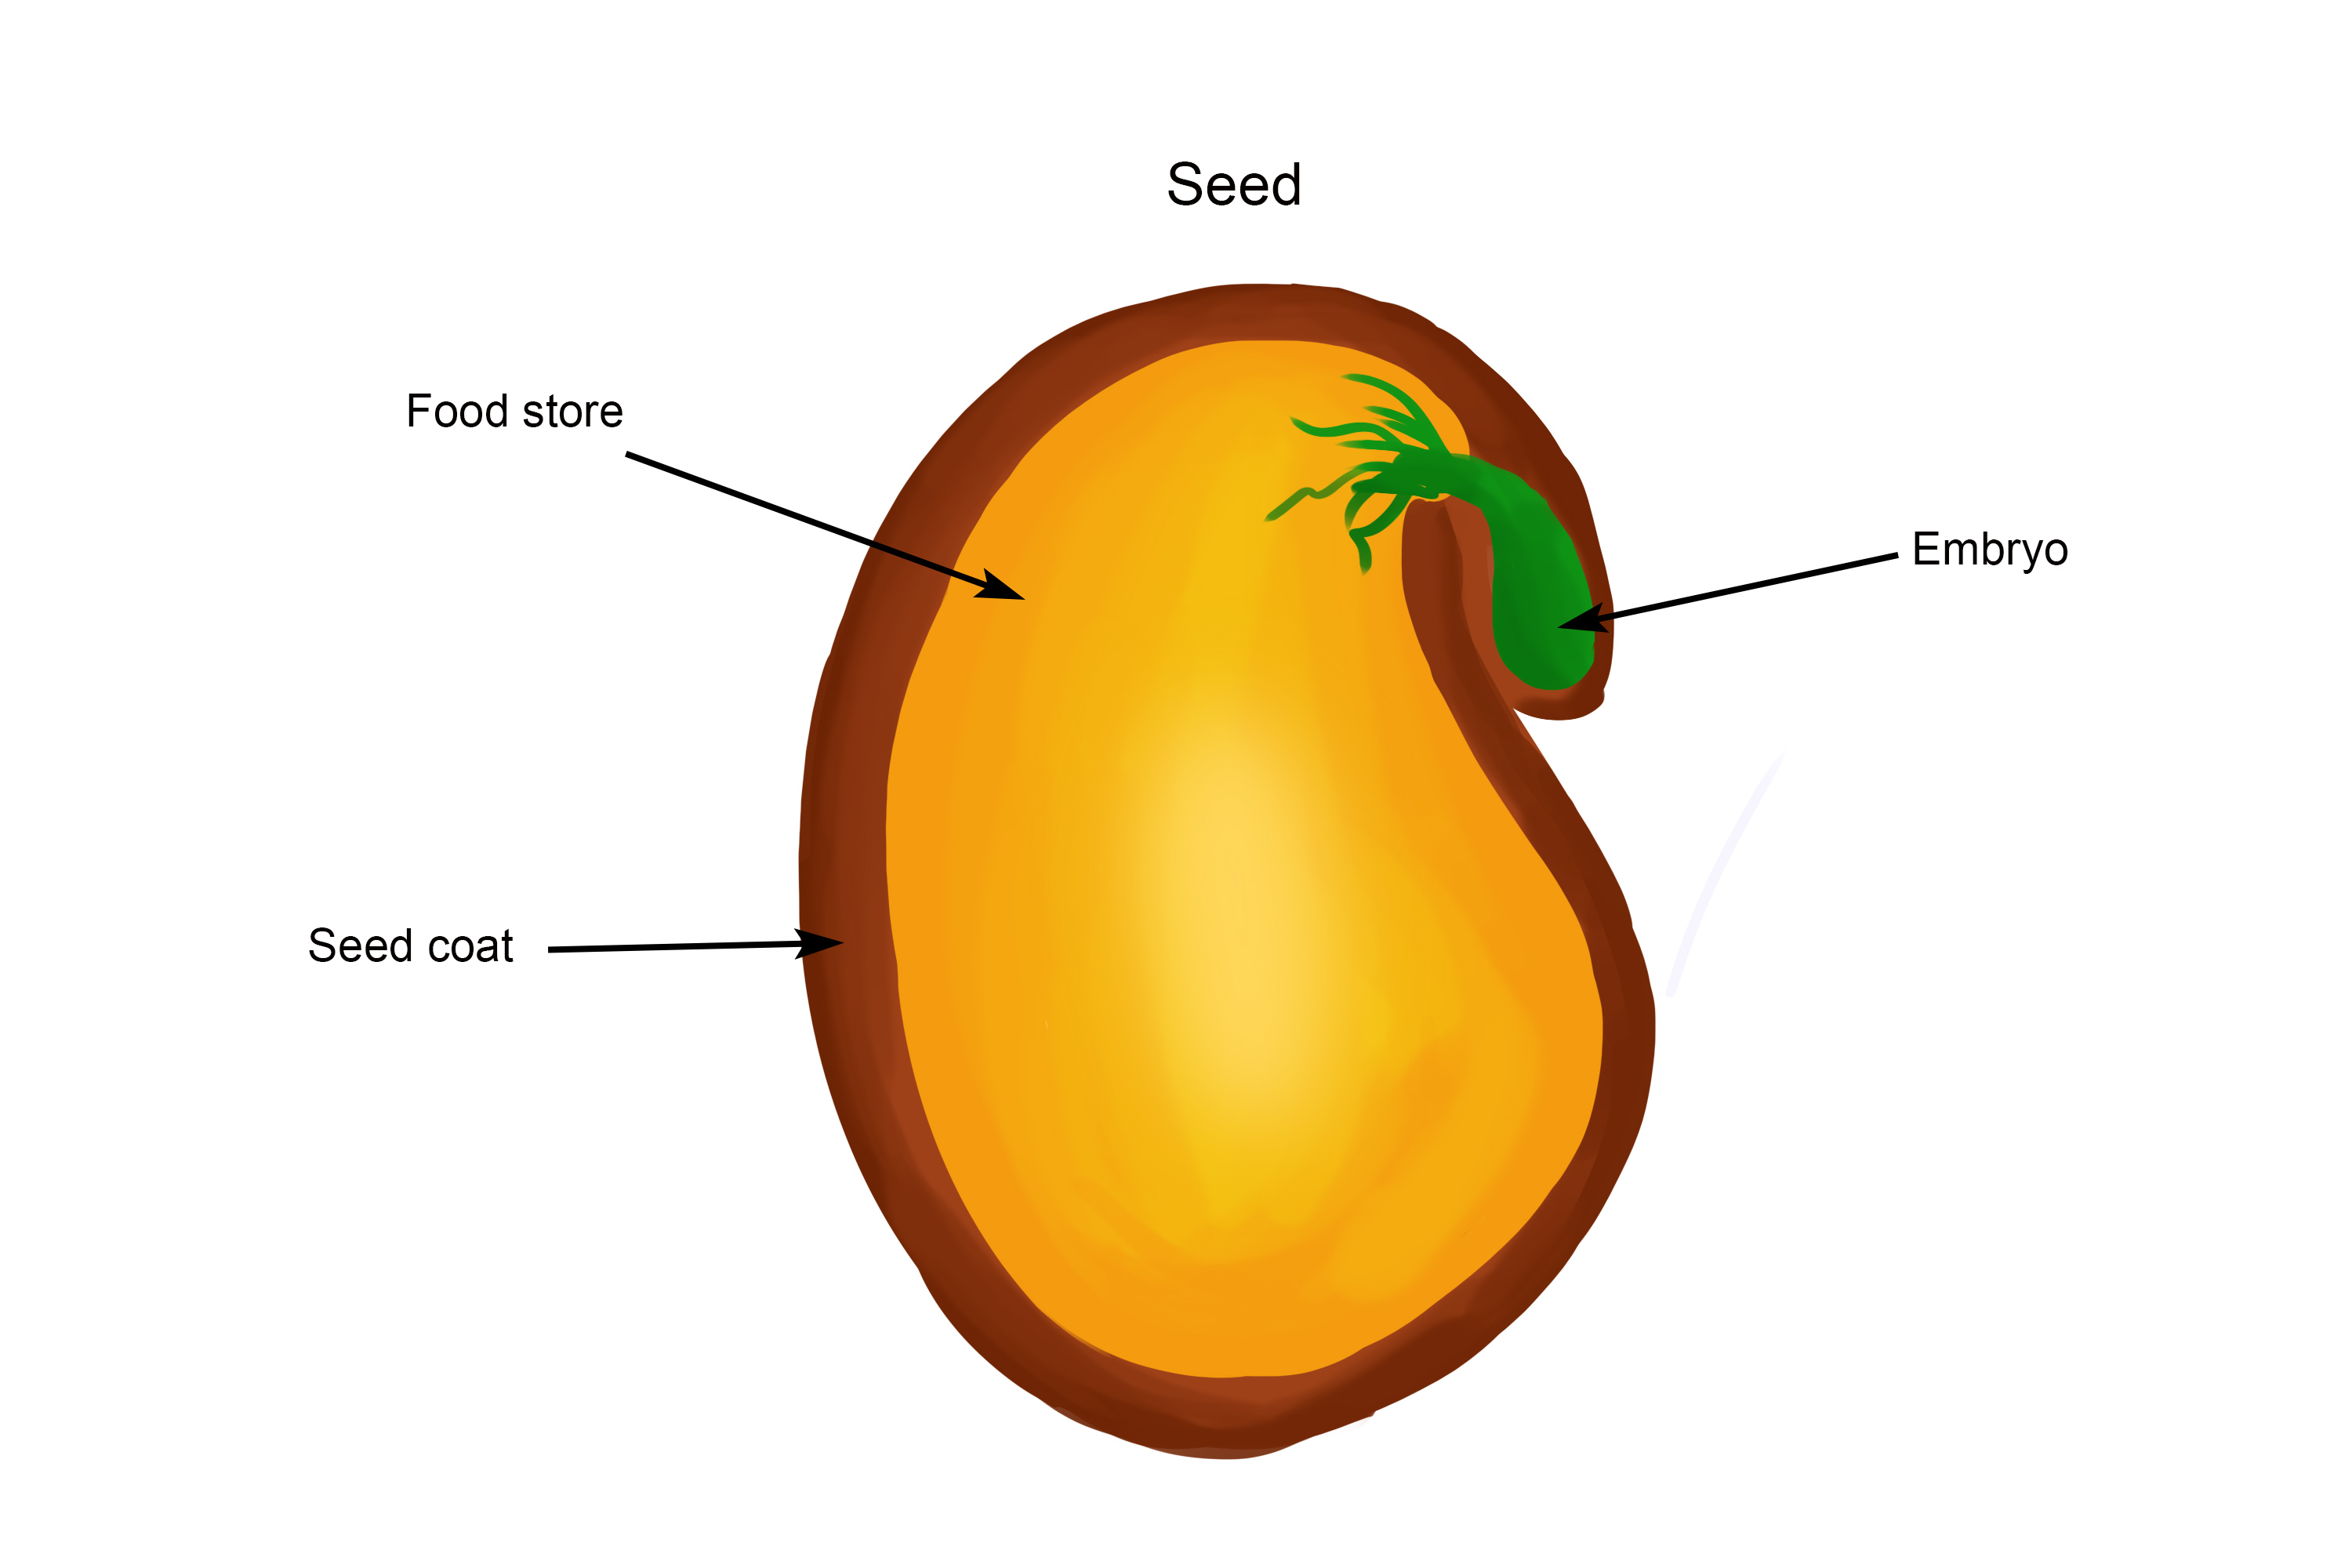 Once an egg is fertilized it becomes a seed the seed is sorounded by a food store that provides the embryo with enough food to continue growth